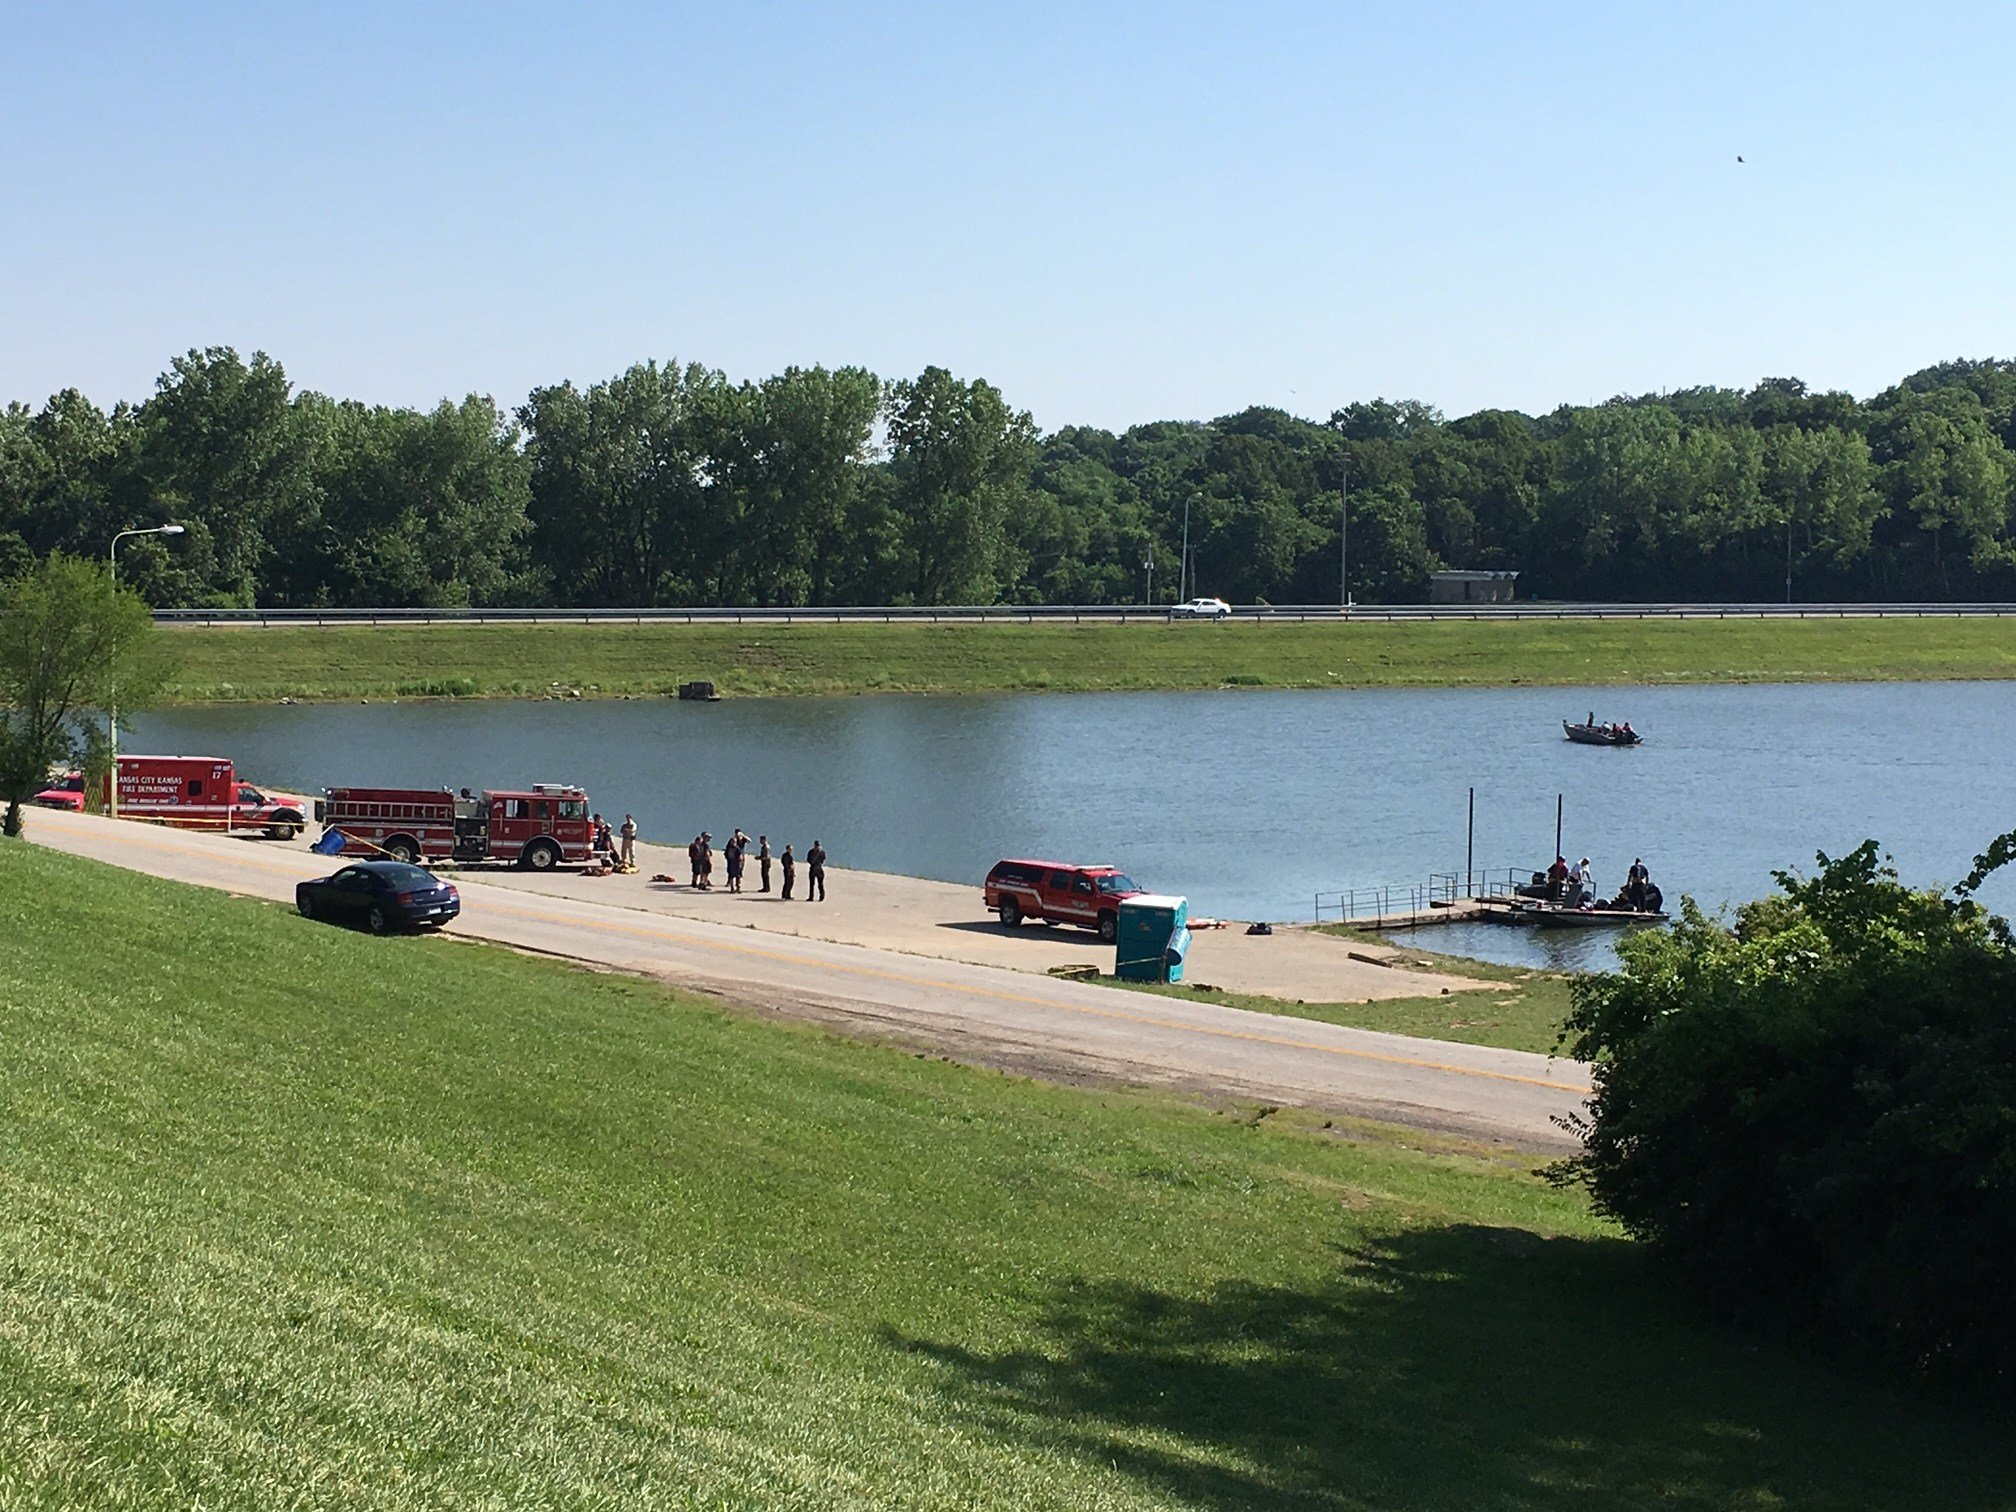 Authorities were searching the lake at Pierson Park for a person who may have drowned. (KCTV/Eric Smith)